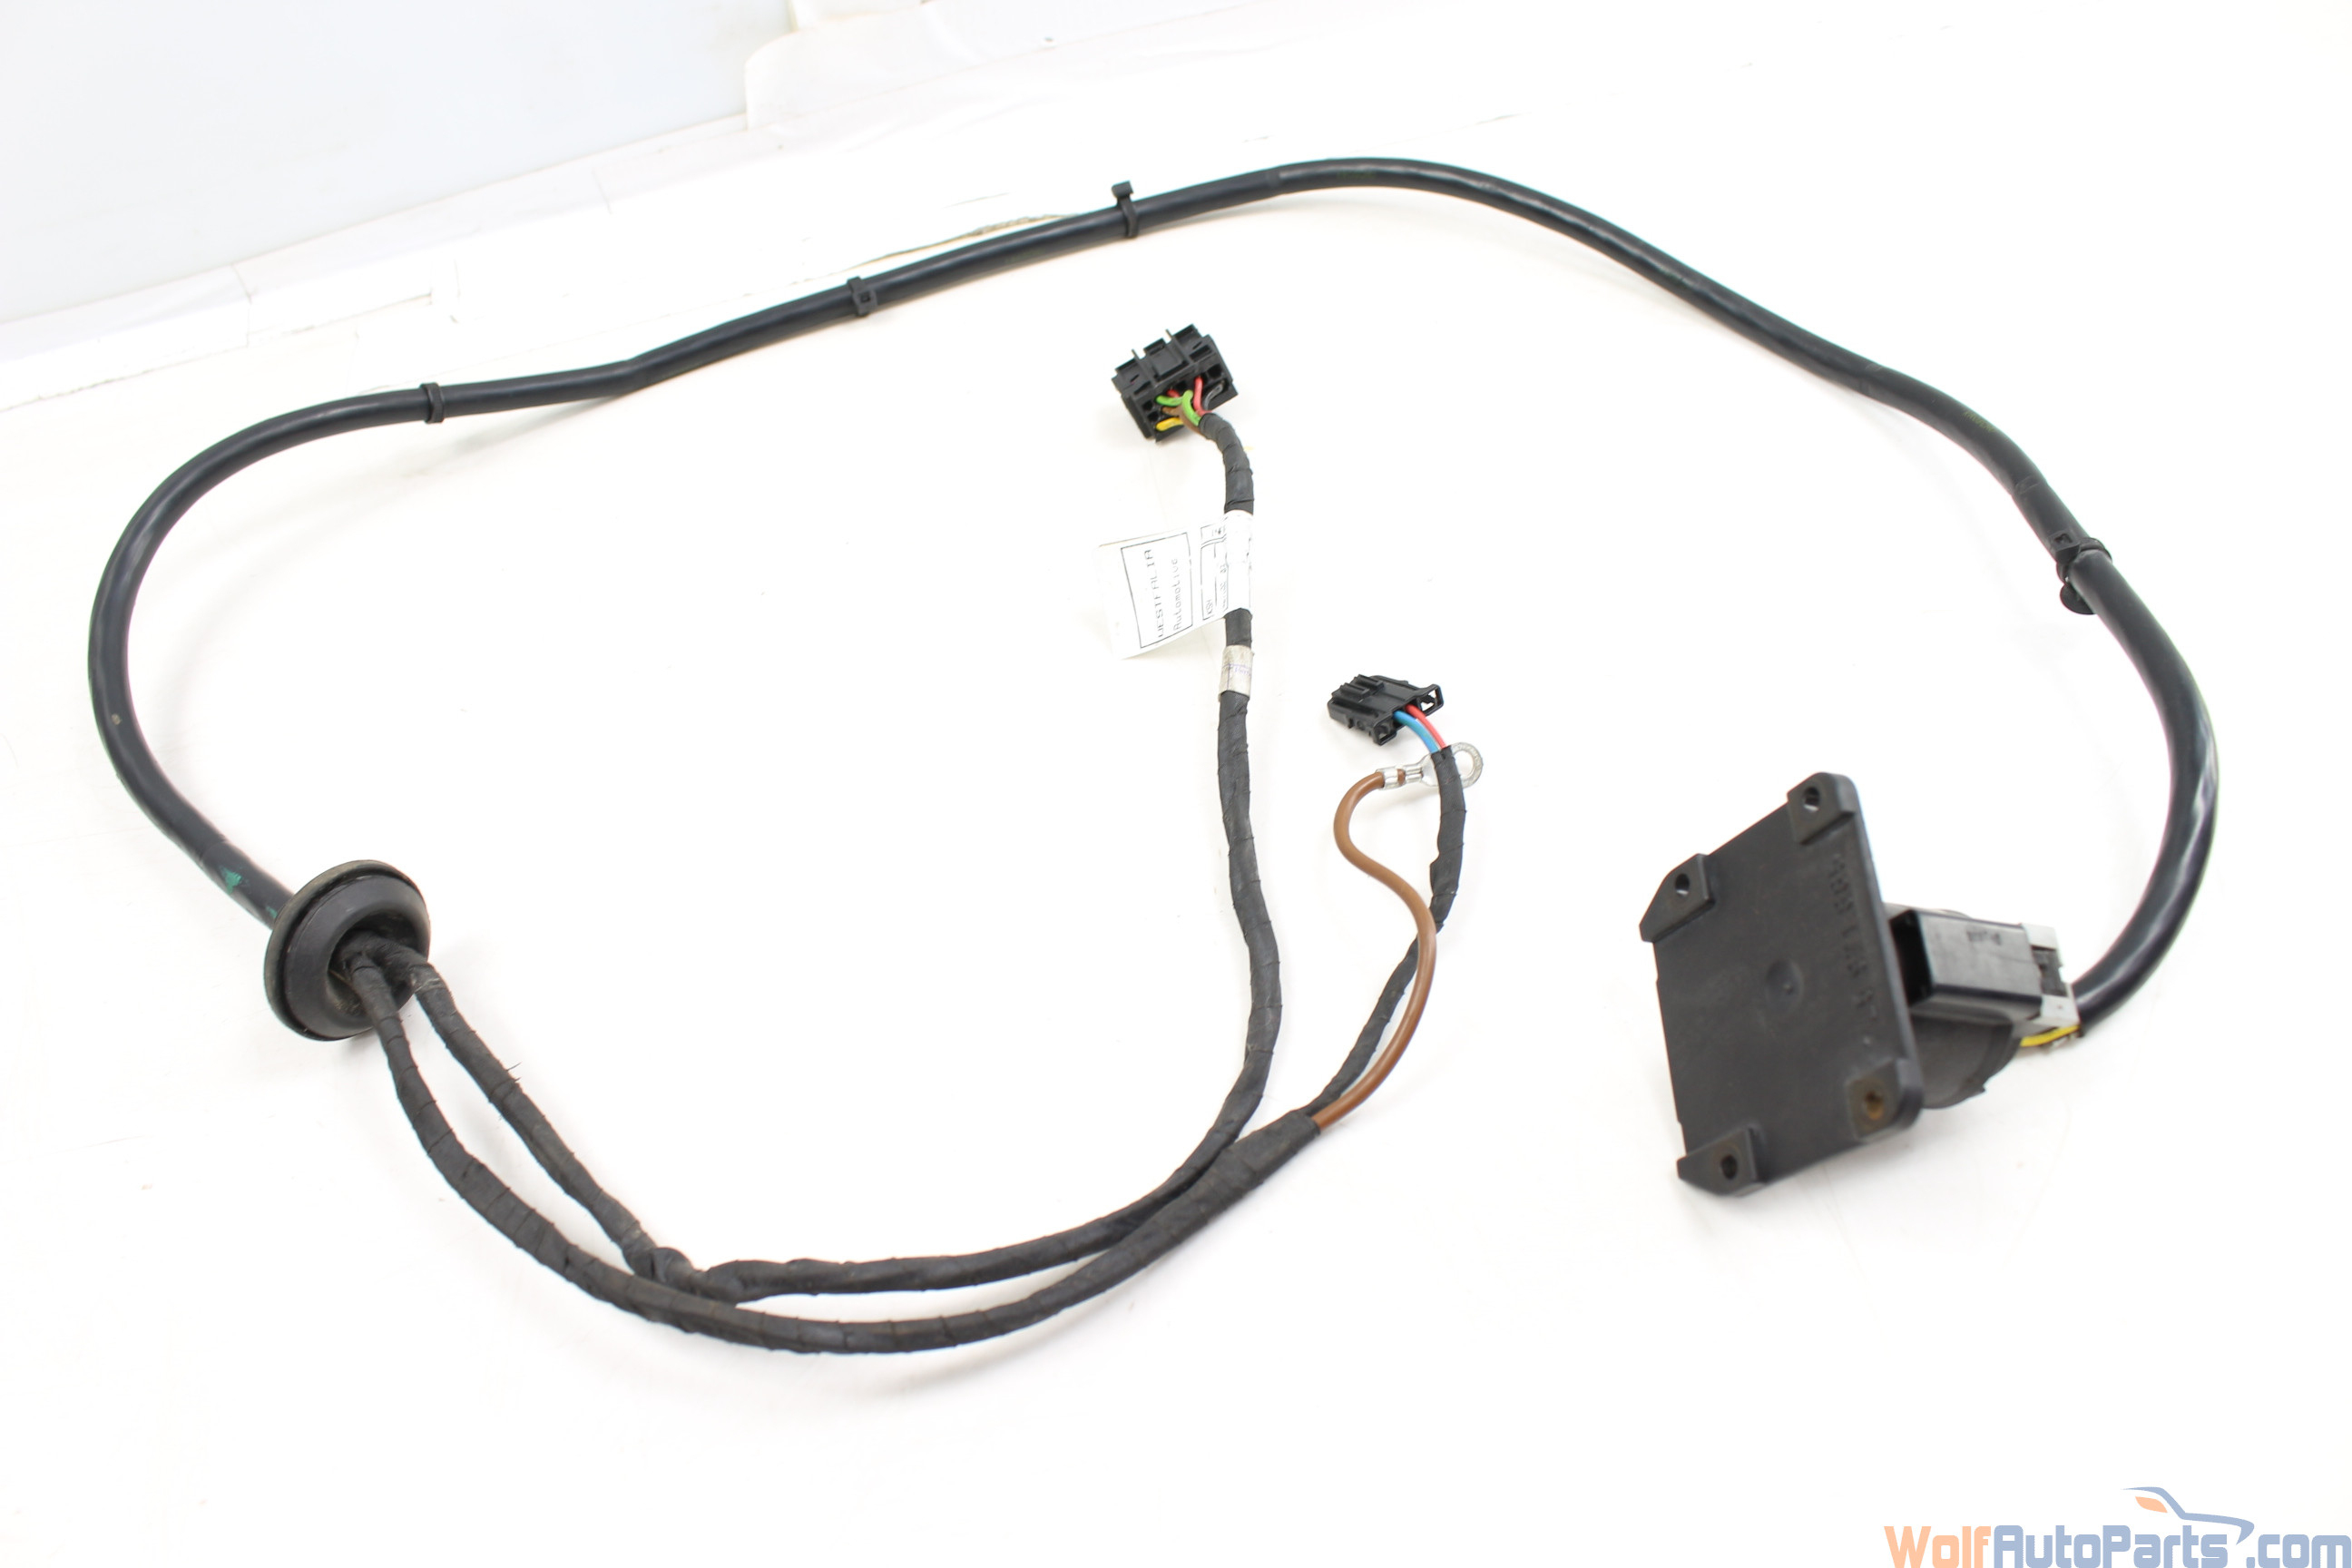 Audi Q7 Trailer Wiring Harness | Wiring Diagram - Audi Q7 Trailer Wiring Diagram